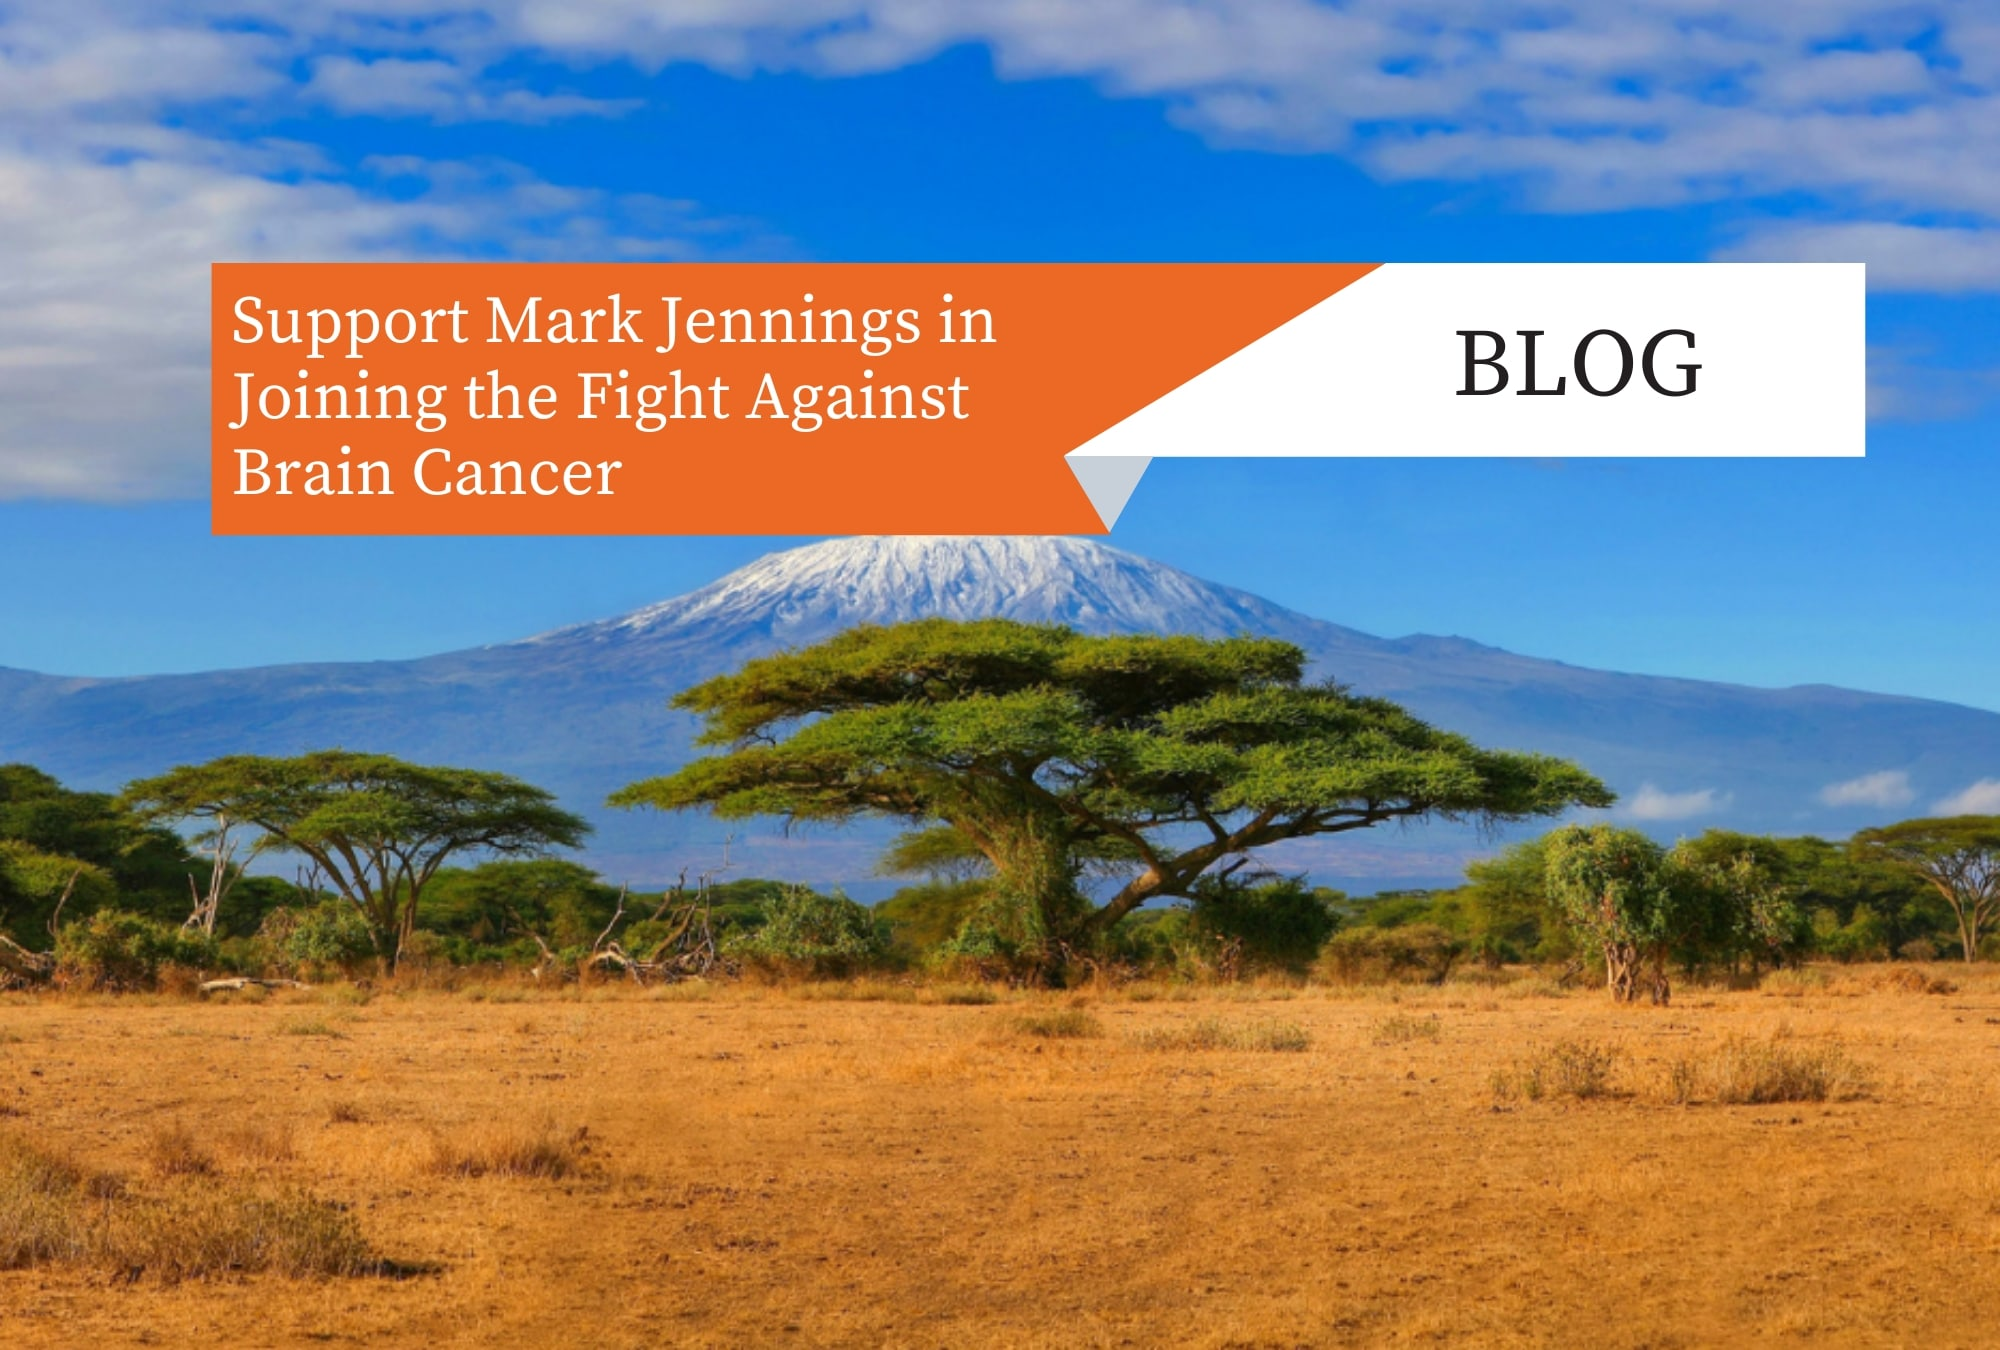 Support Mark Jennings in Joining the Fight Against Brain Cancer!